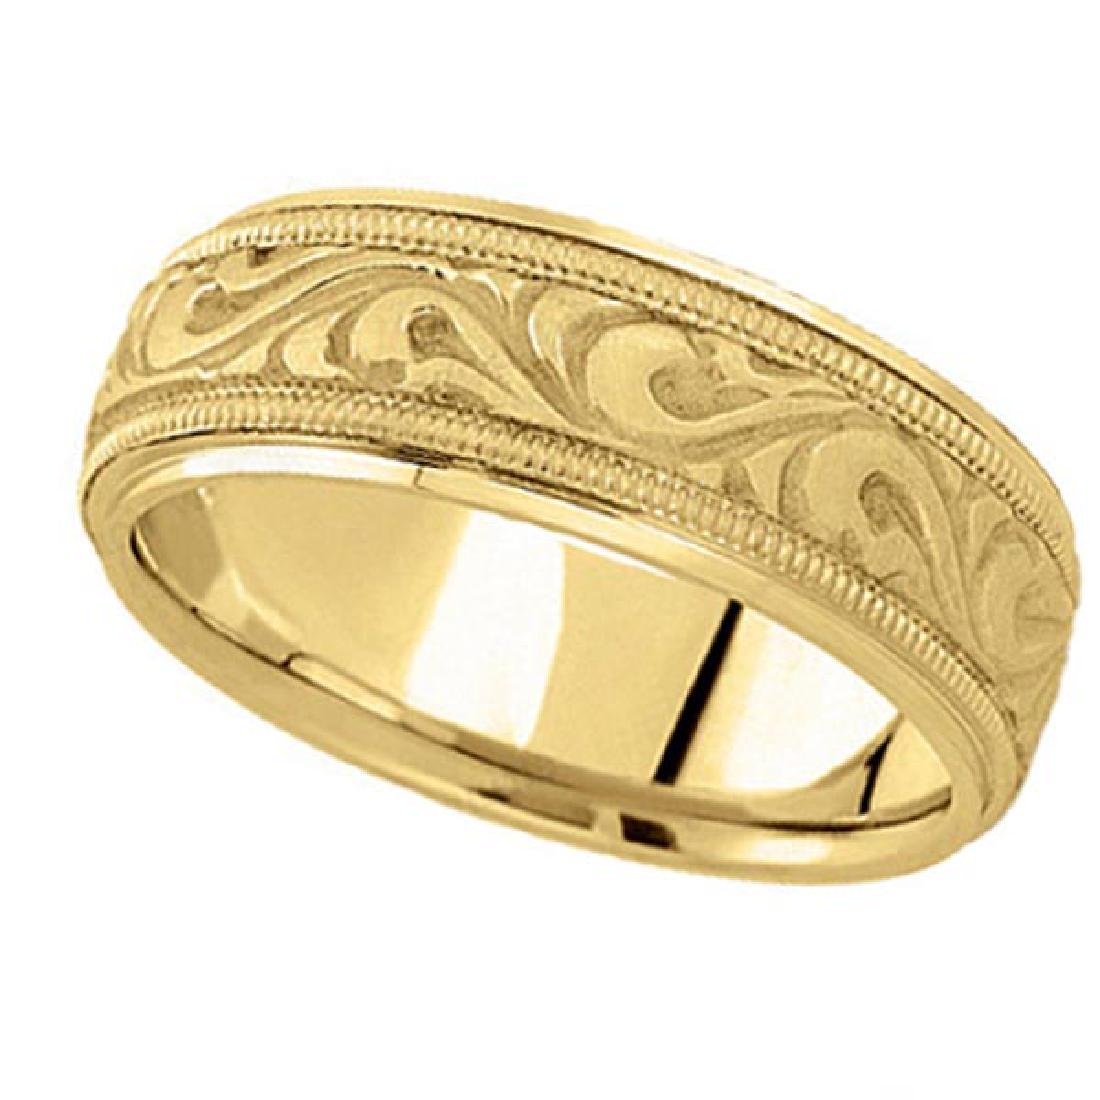 Antique Style Handmade Wedding Band in 18k Yellow Gold